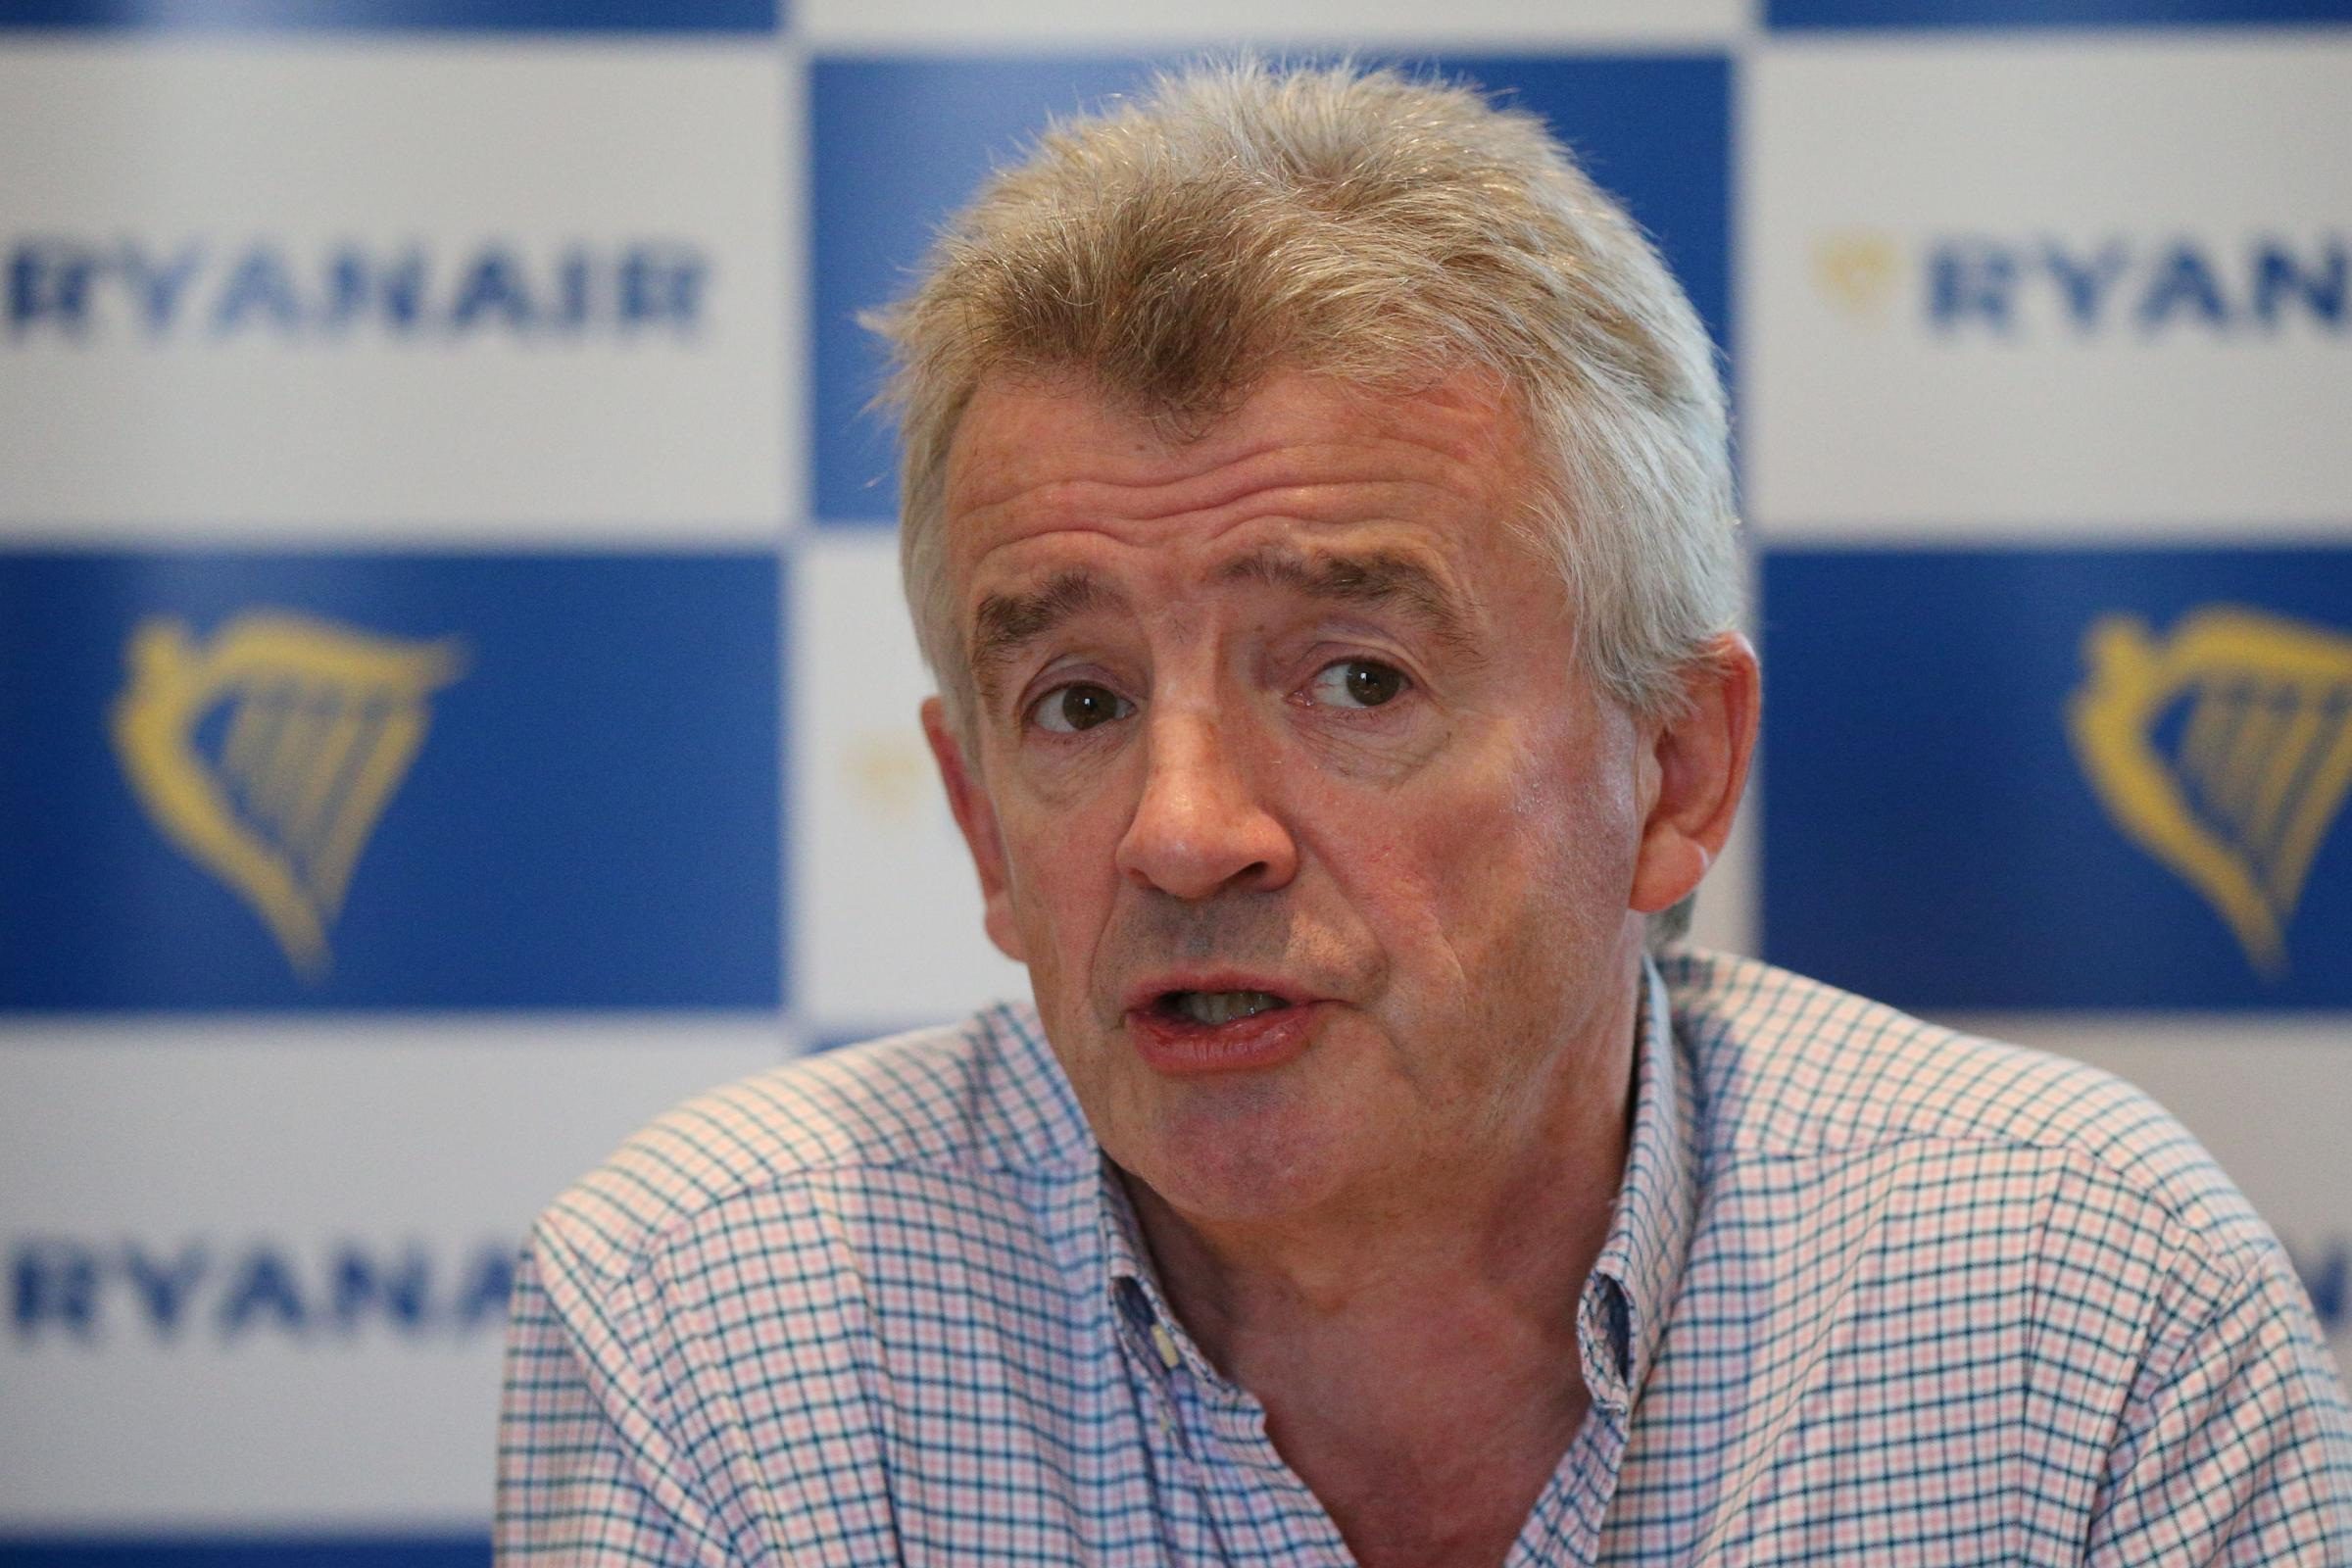 Ryanair boss under fire after 'awful' call for Muslim men to be profiled